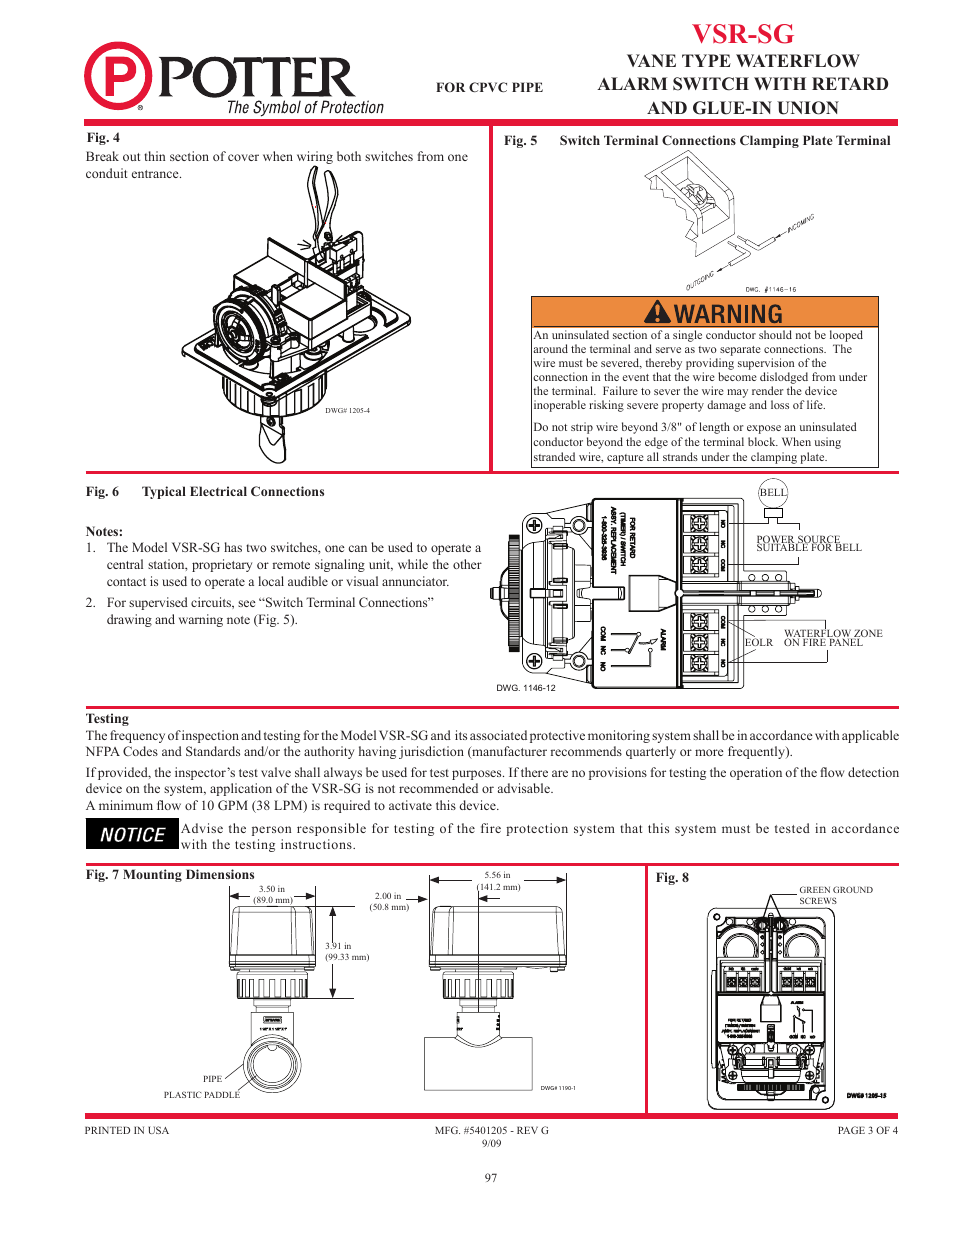 hight resolution of  wiring diagram vsr sg potter releasing systems user manual page 97 108 on fire